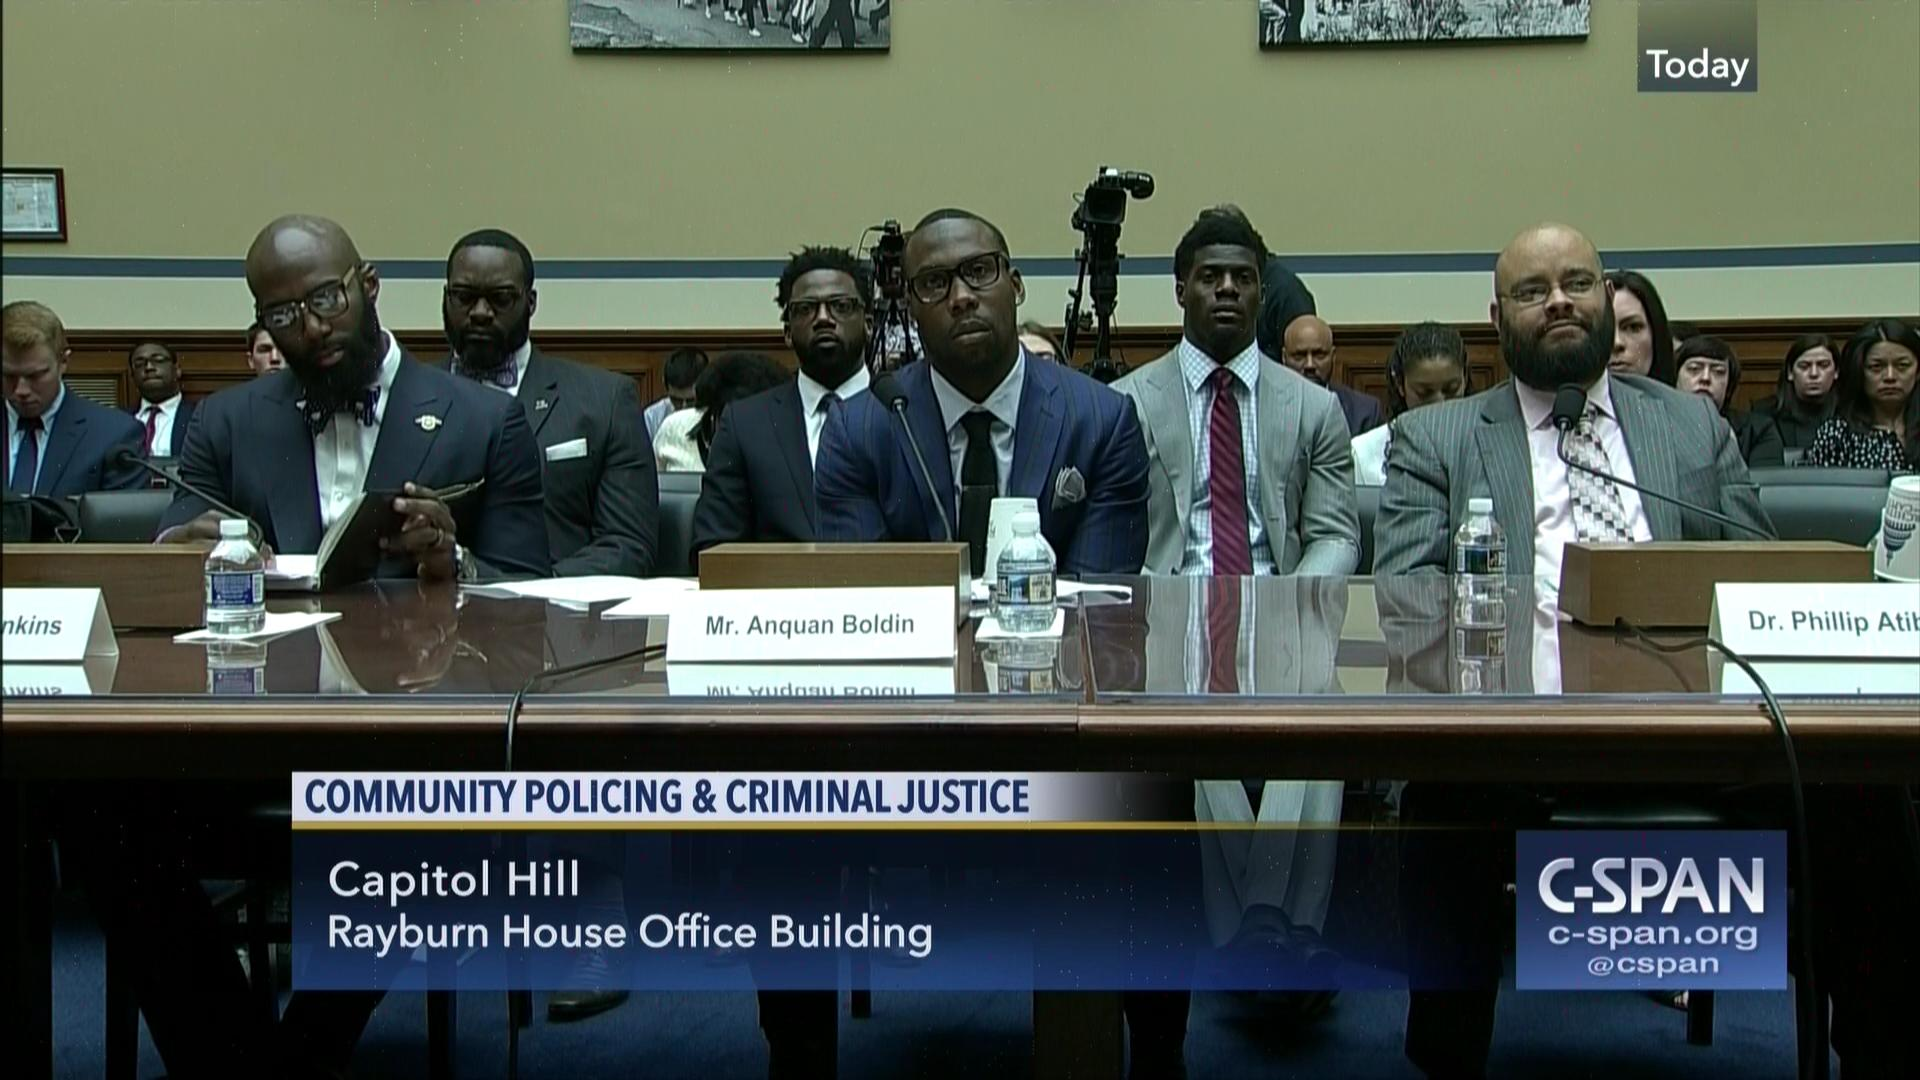 NFL Players Police Front Lines Broken Justice System, Mar 30 2017 |  C SPAN.org